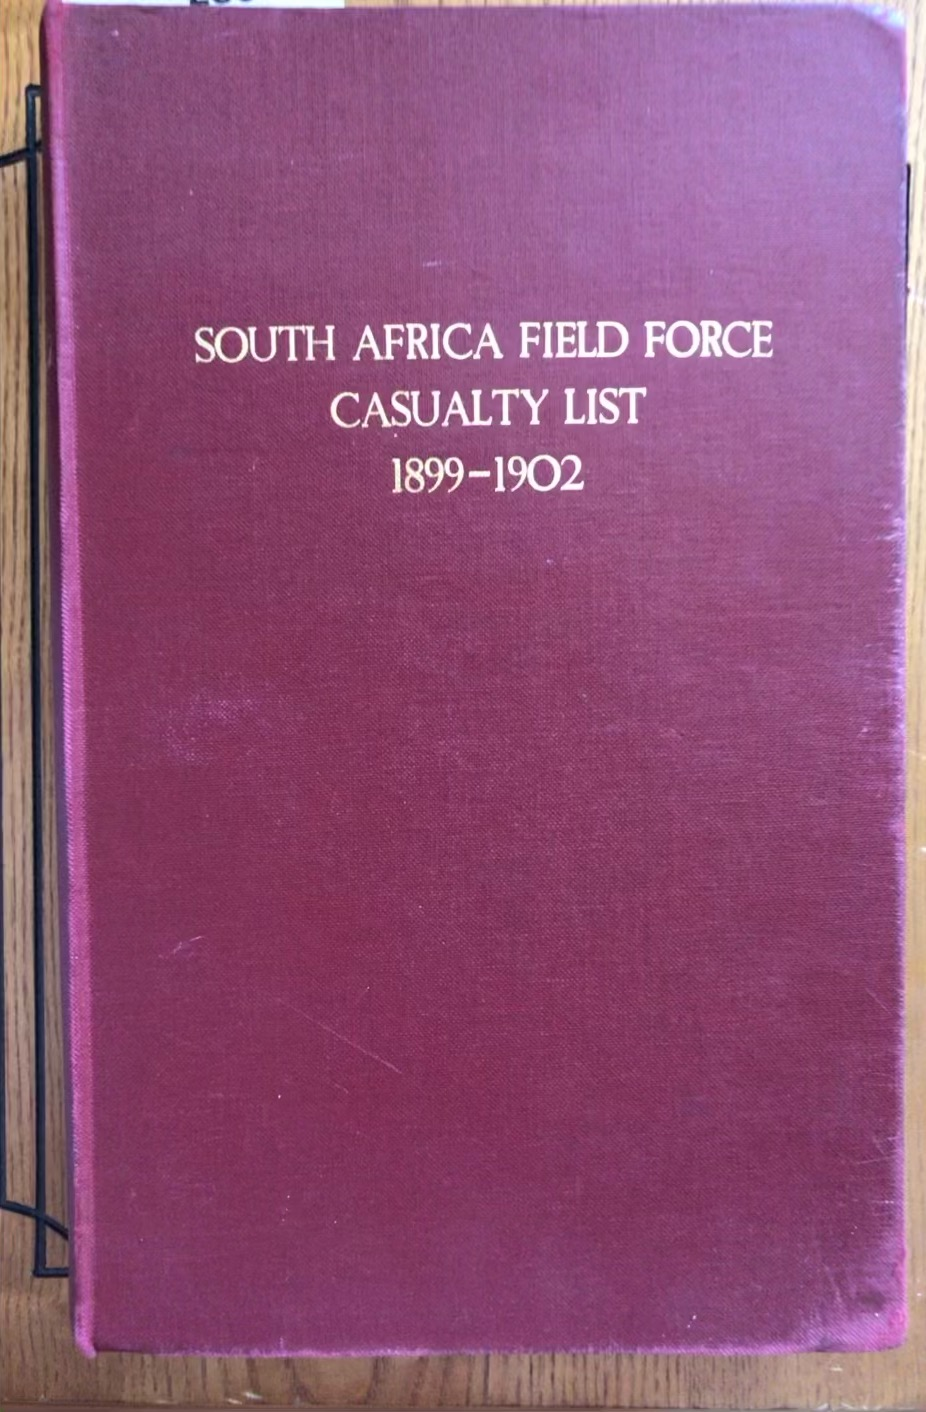 South Africa Field Force Casualty List, 1899-1902 produced by Oaklands, (6) editions bound